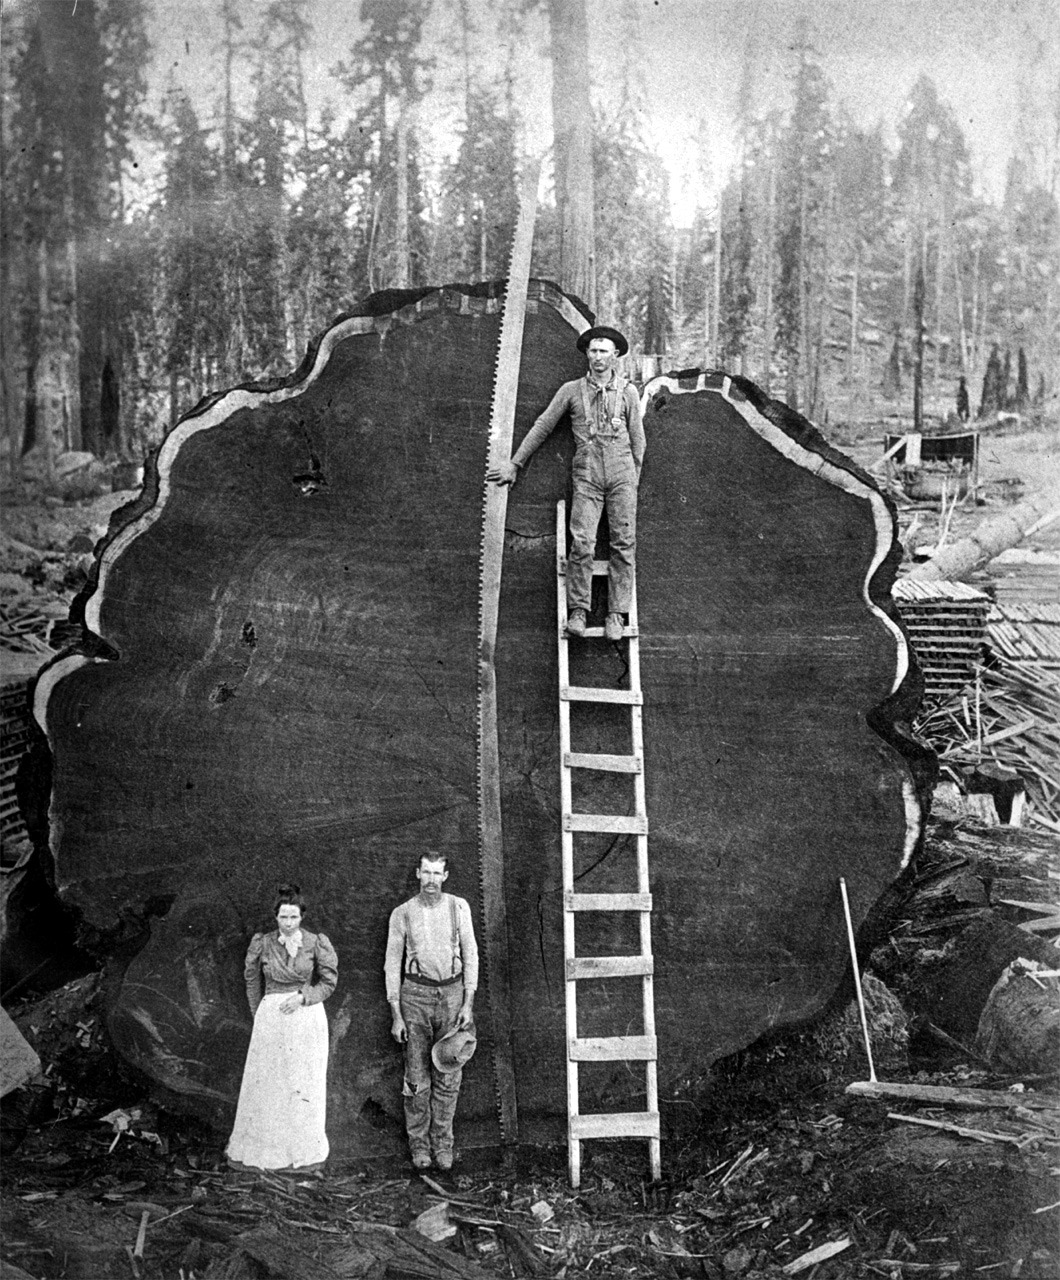 familiale:  A giant sequoia log, Sequoia National Park, California, undated, c1910. (via Historic American Engineering Record)